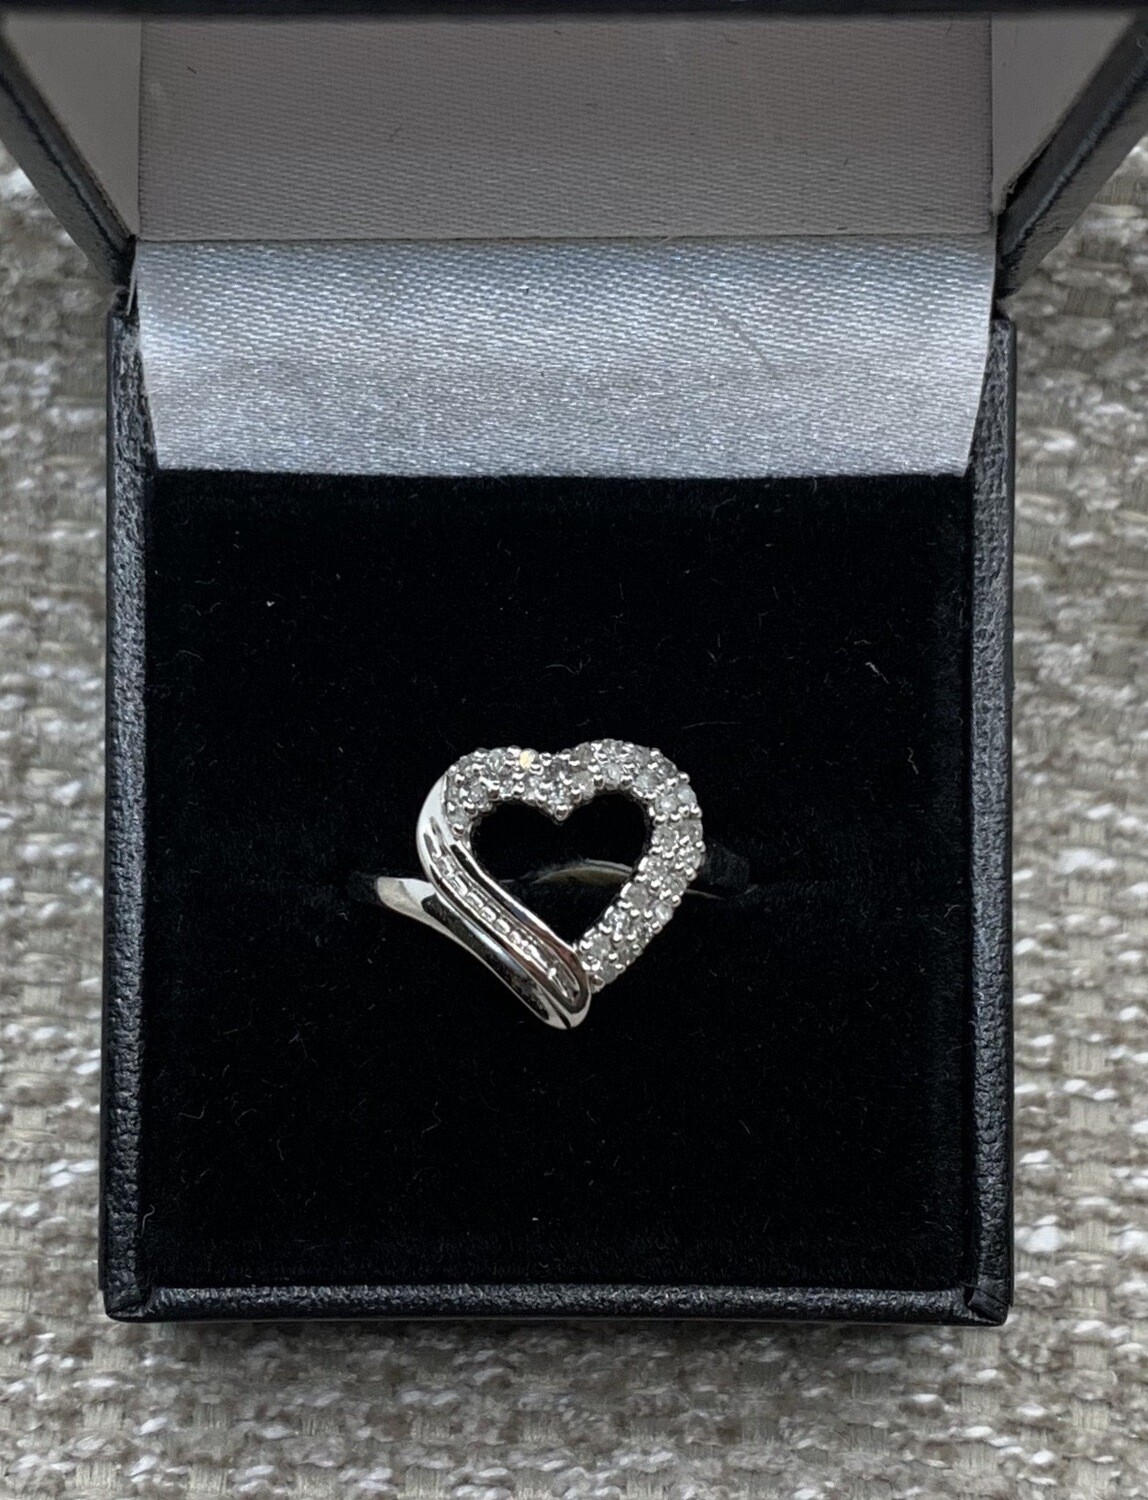 20 pt. Total Weight Diamond Heart Shaped Ring set in White Gold